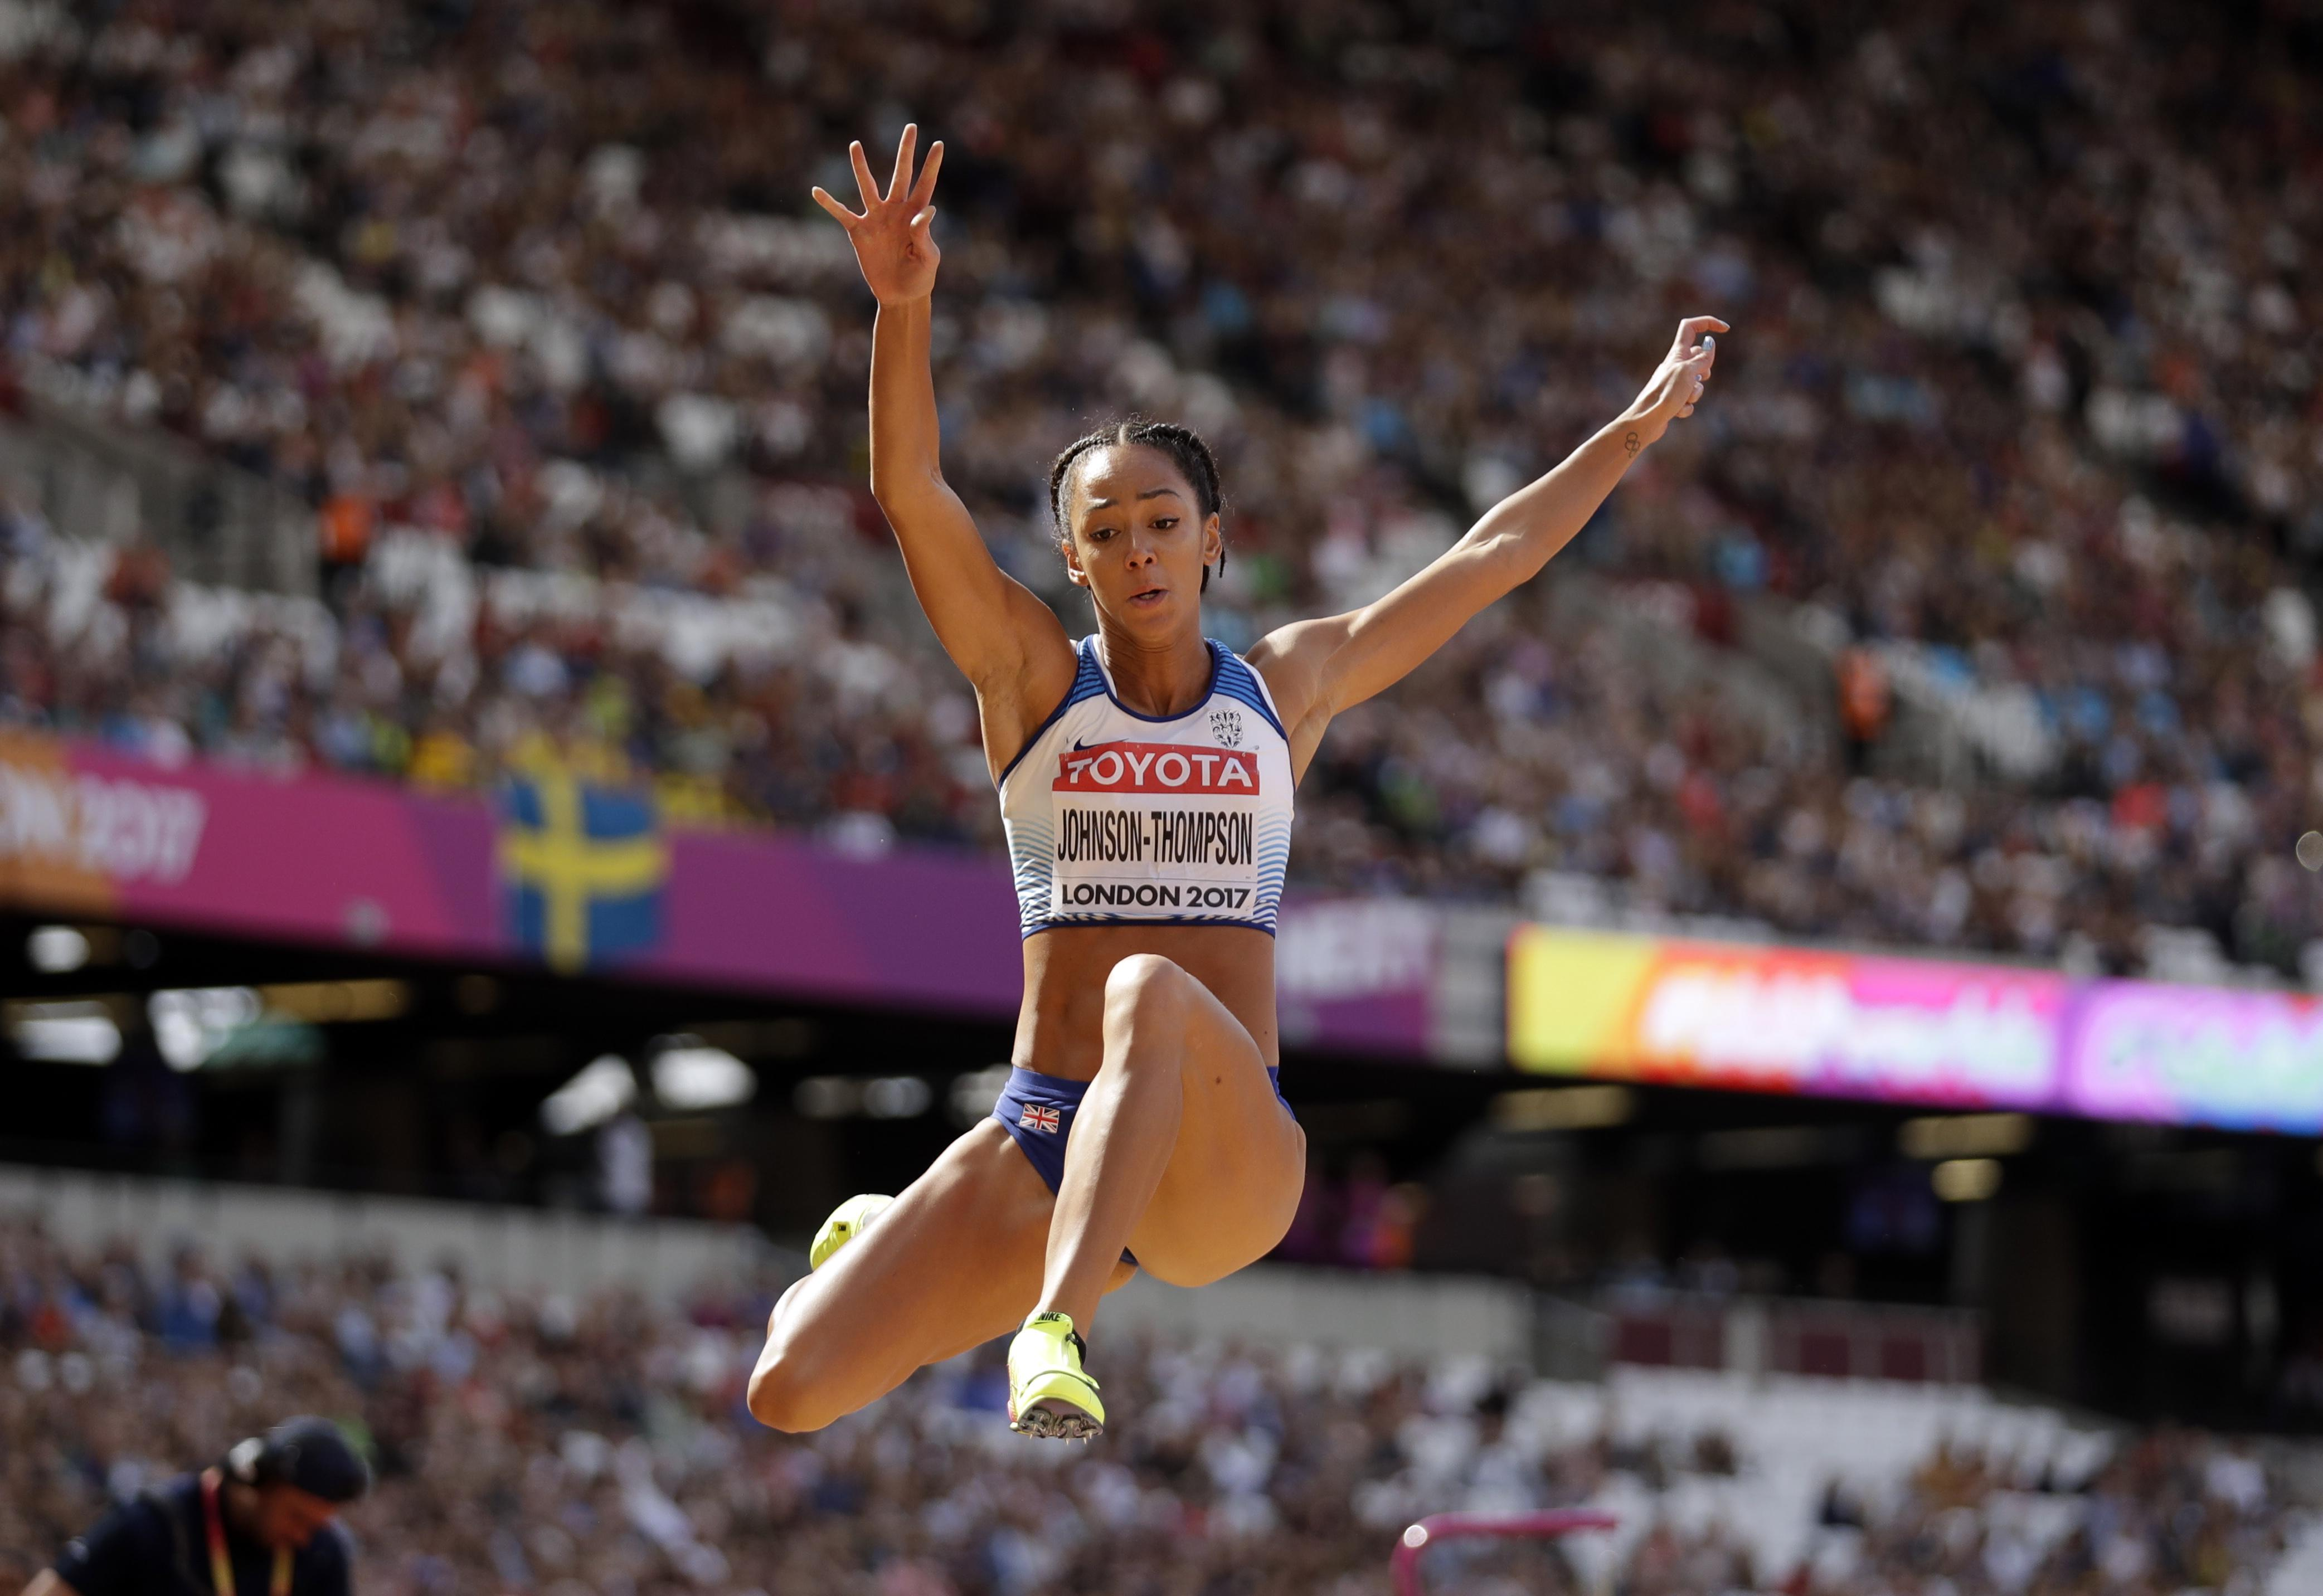 Katarina Johnson-Thompson moved up to third with a good showing in the long-jump